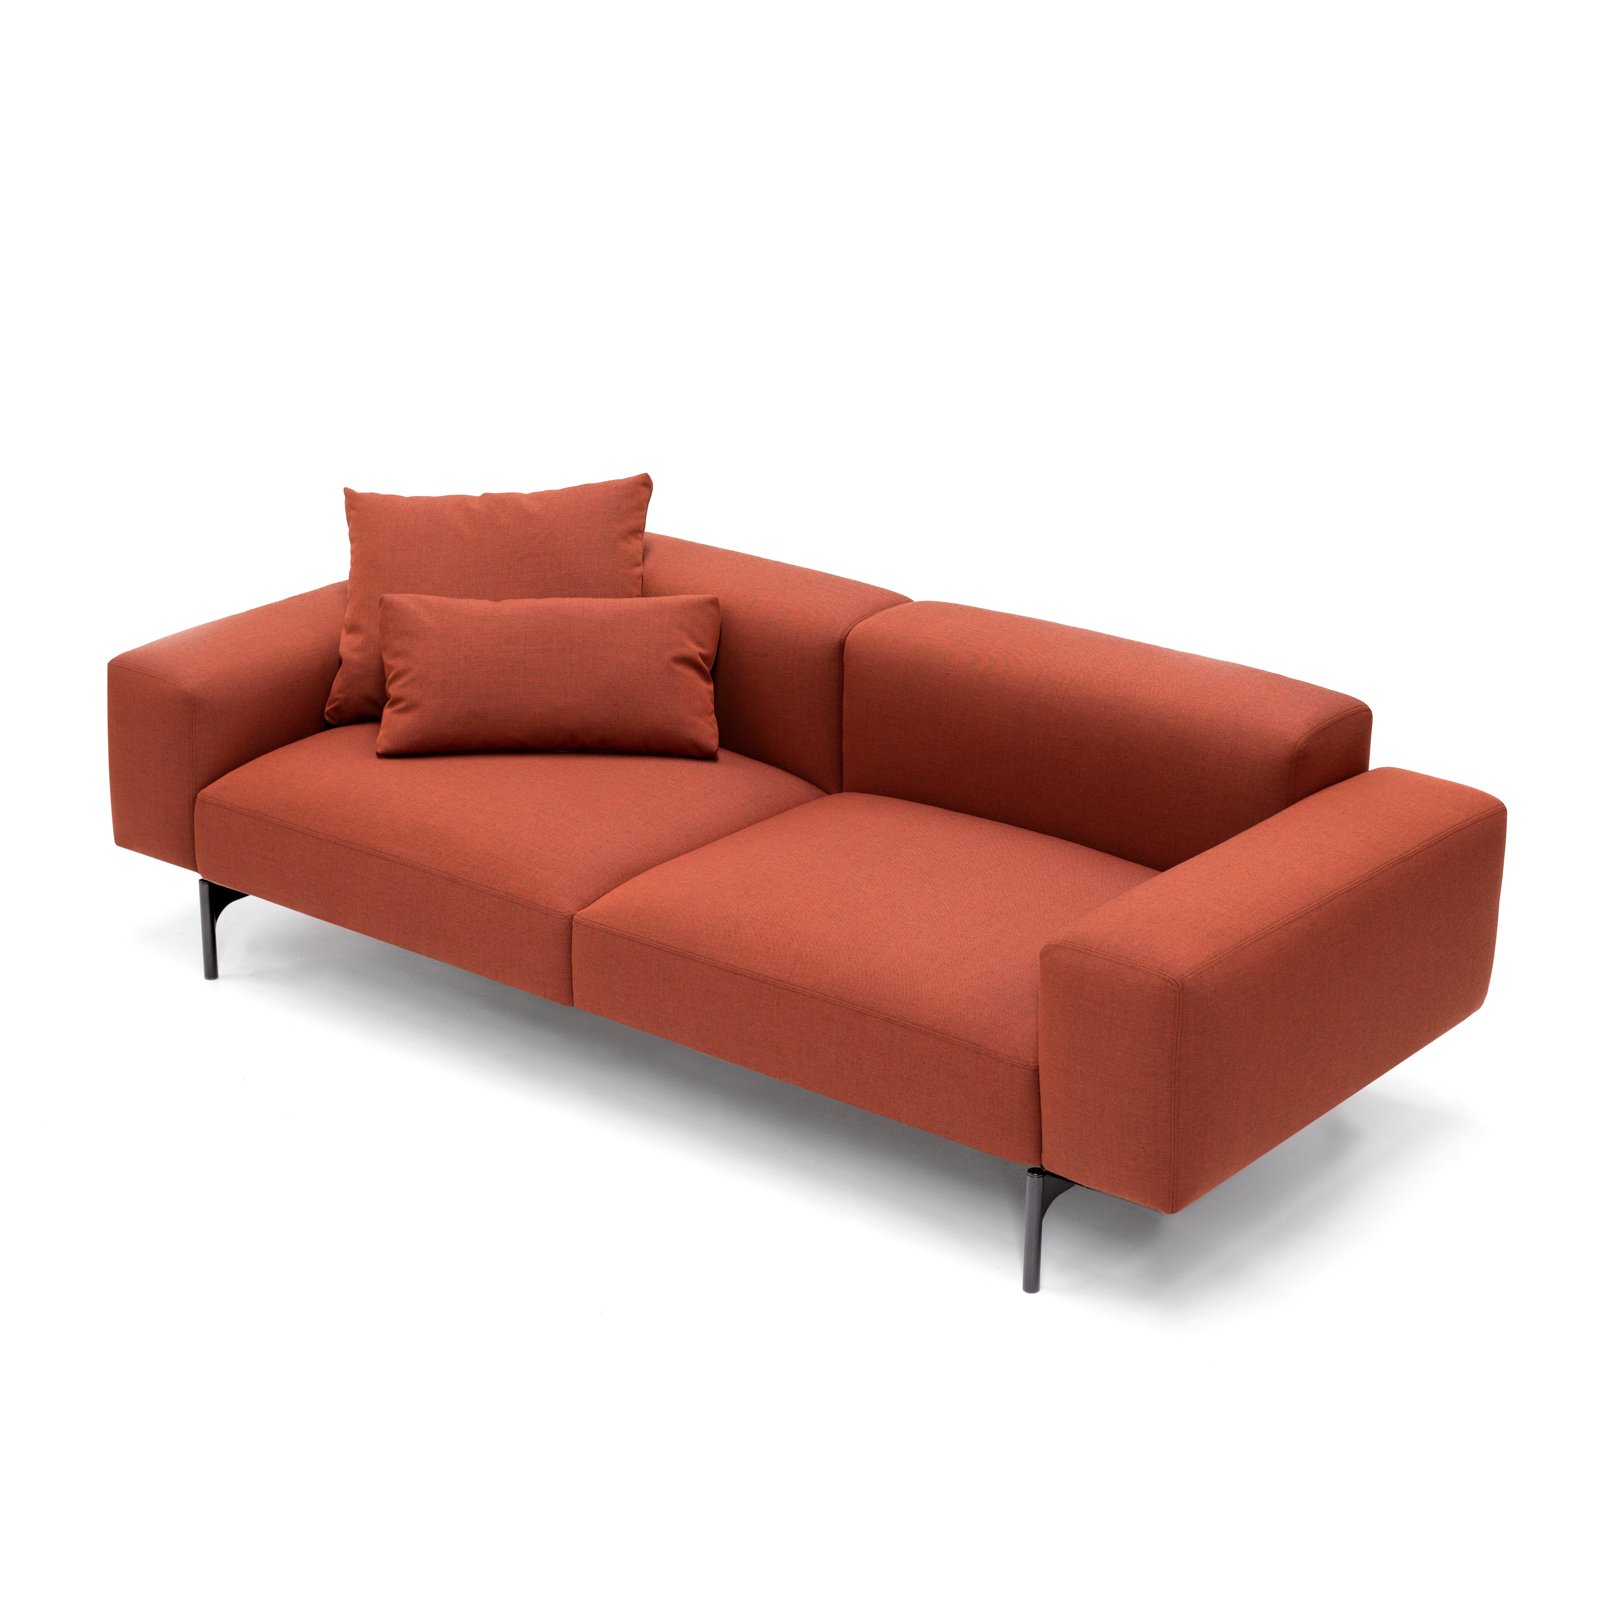 Permanent Future Perry Sofa 2.5 Seater Native Red Ochre Large Cushion Pf Sf Pr 2.5 Nro Top View